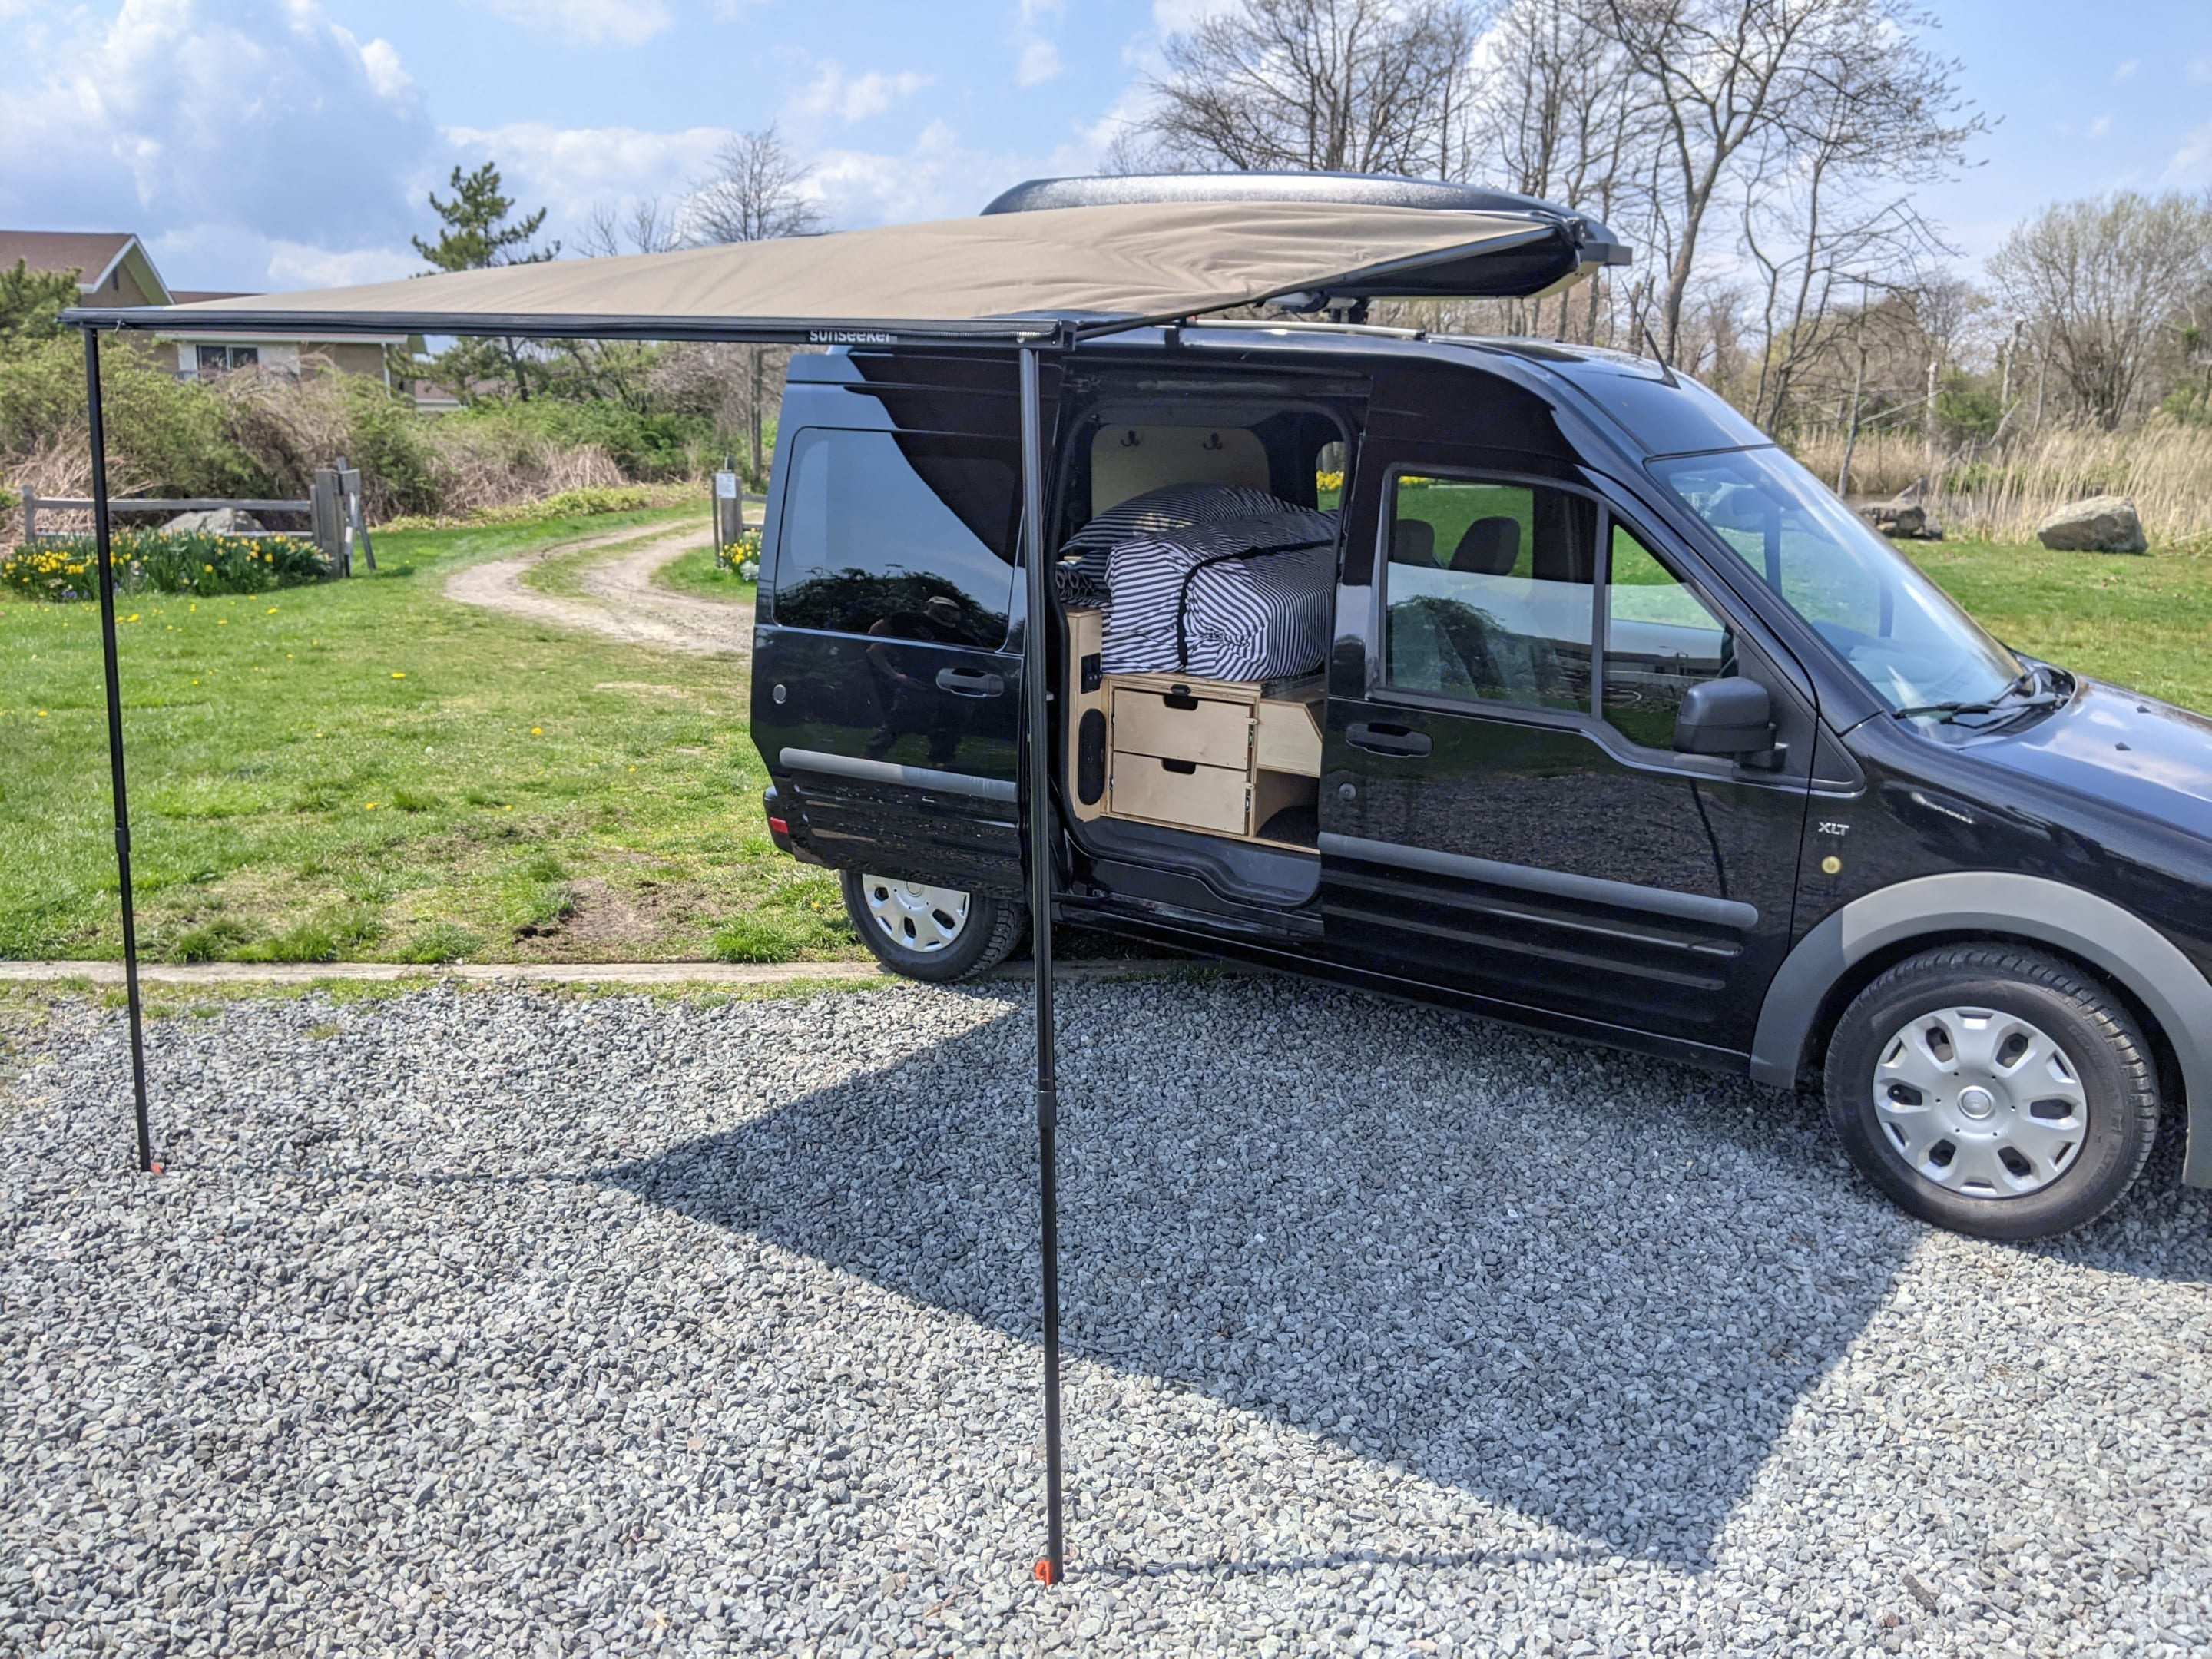 Exterior sun/rain awning. Ford Transit Connect 2012